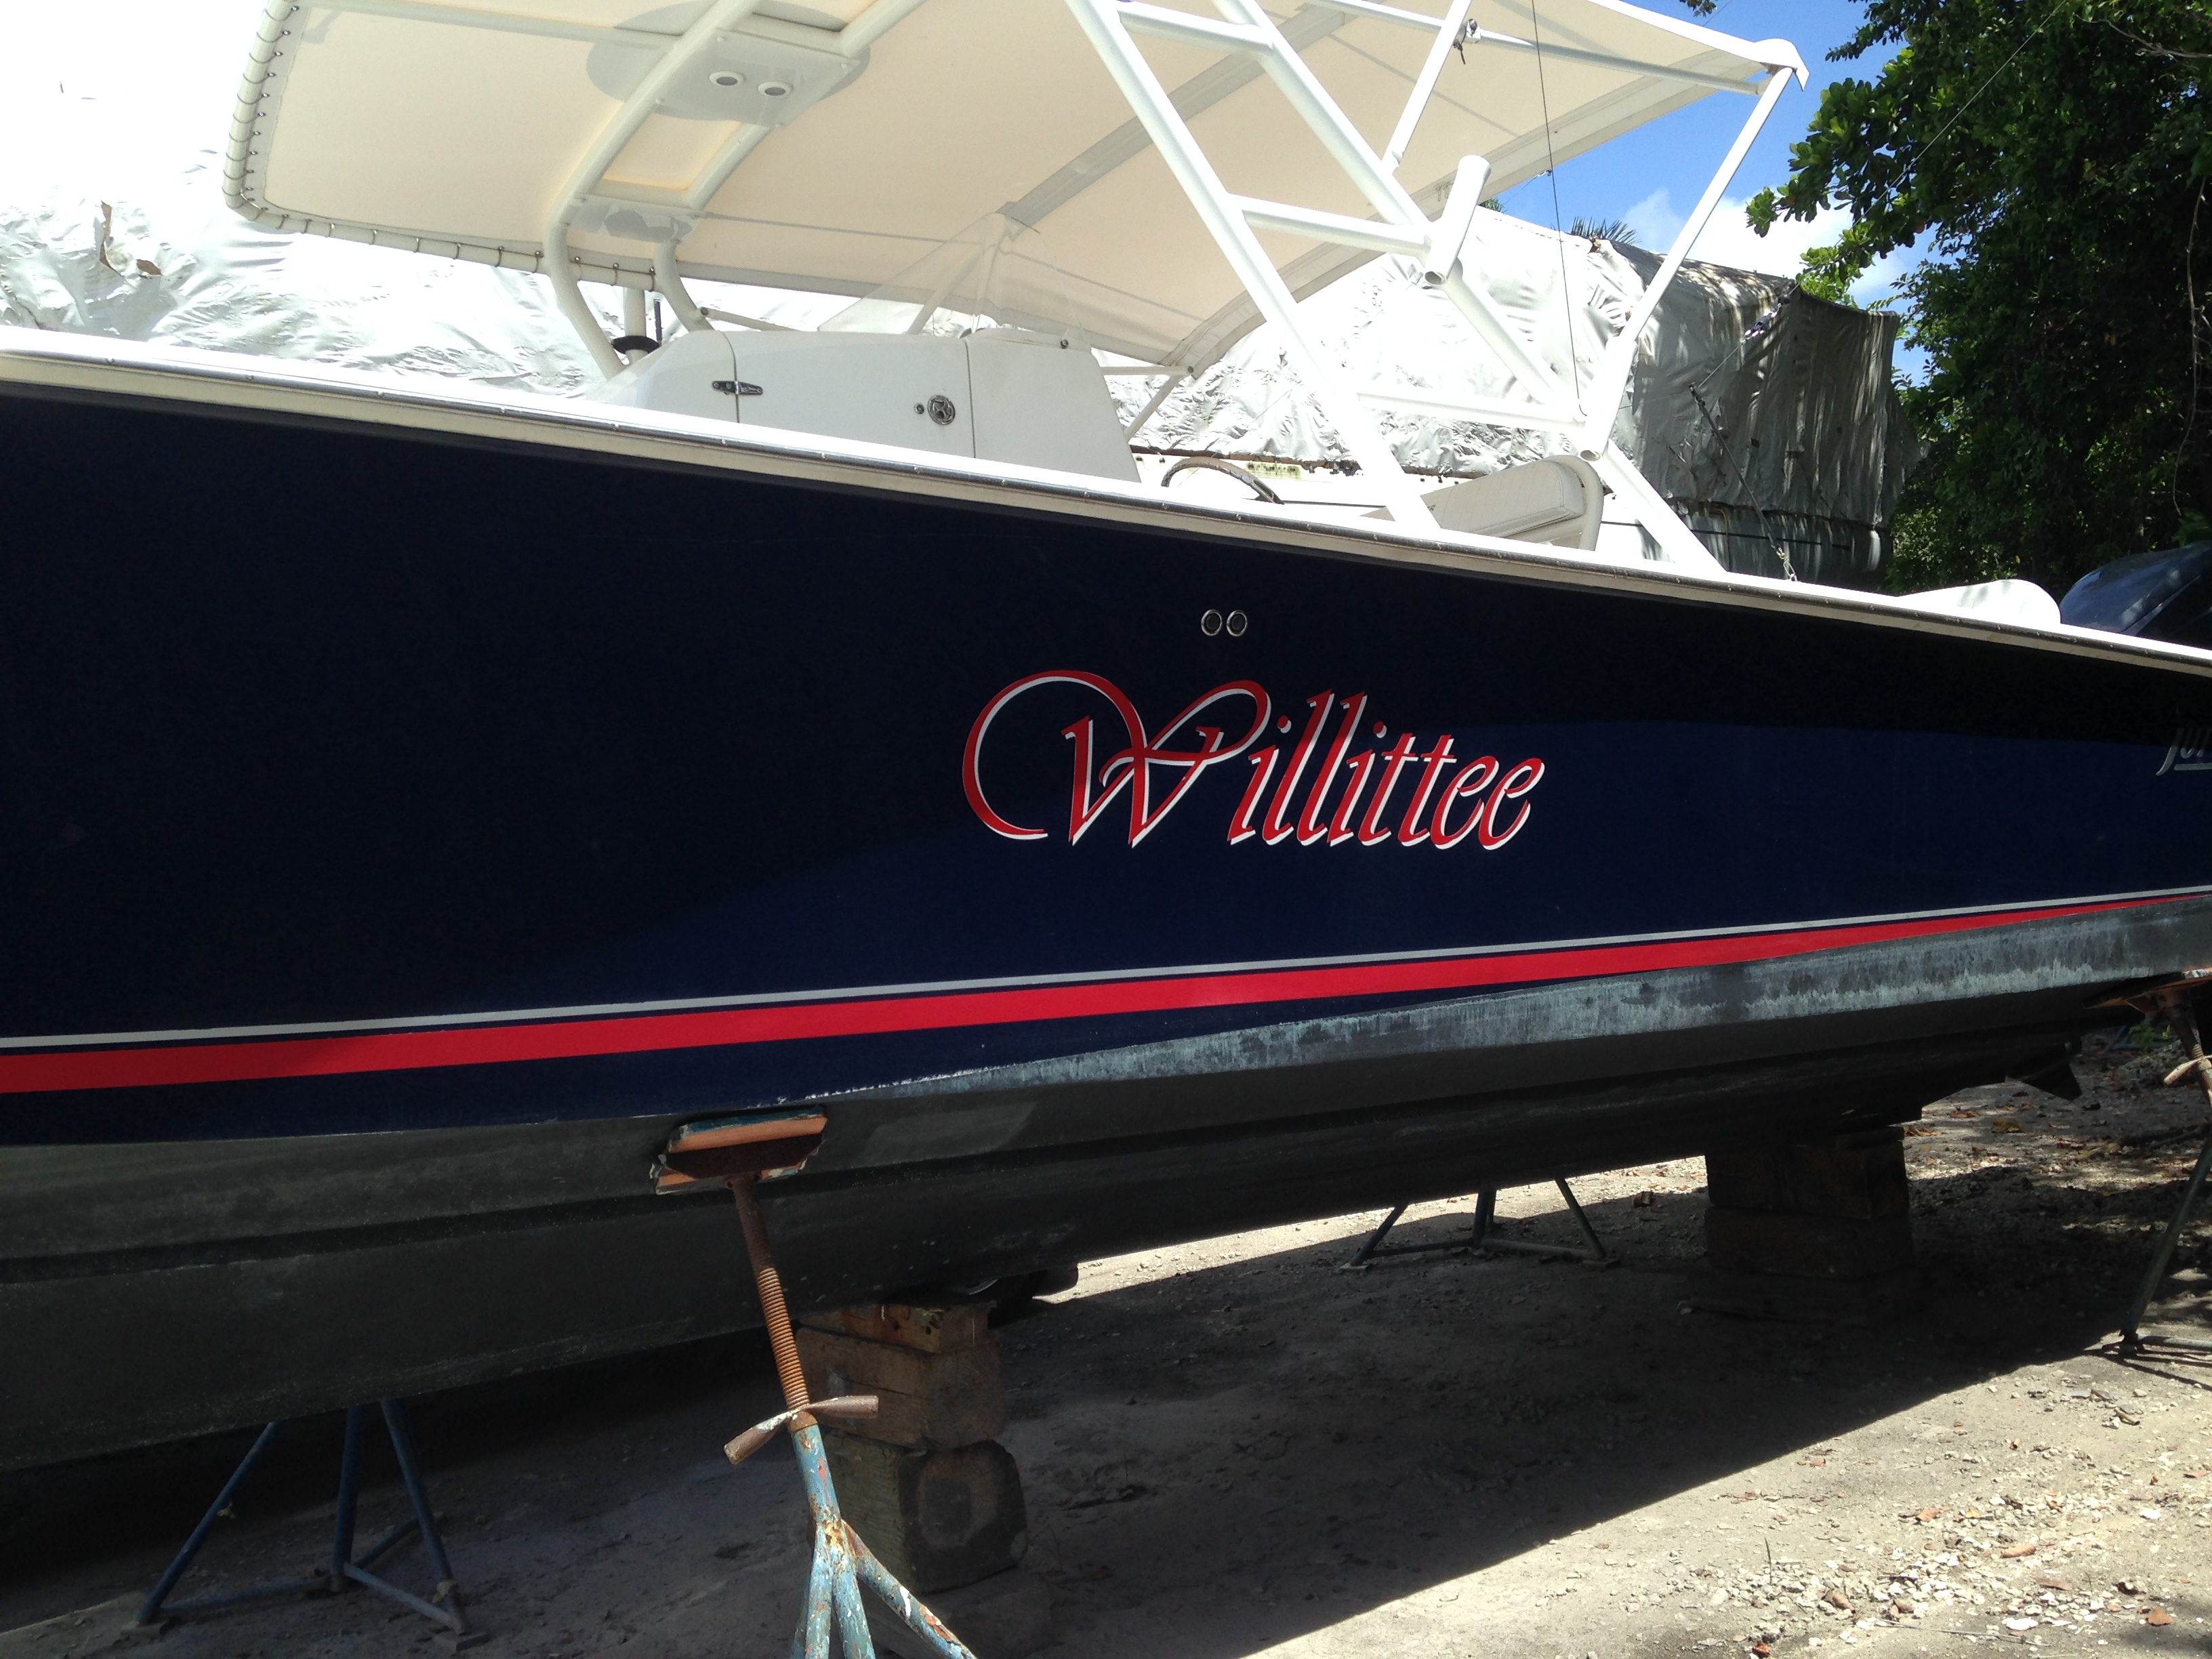 Boot Stripes For Your Boat Signs Of Reilly